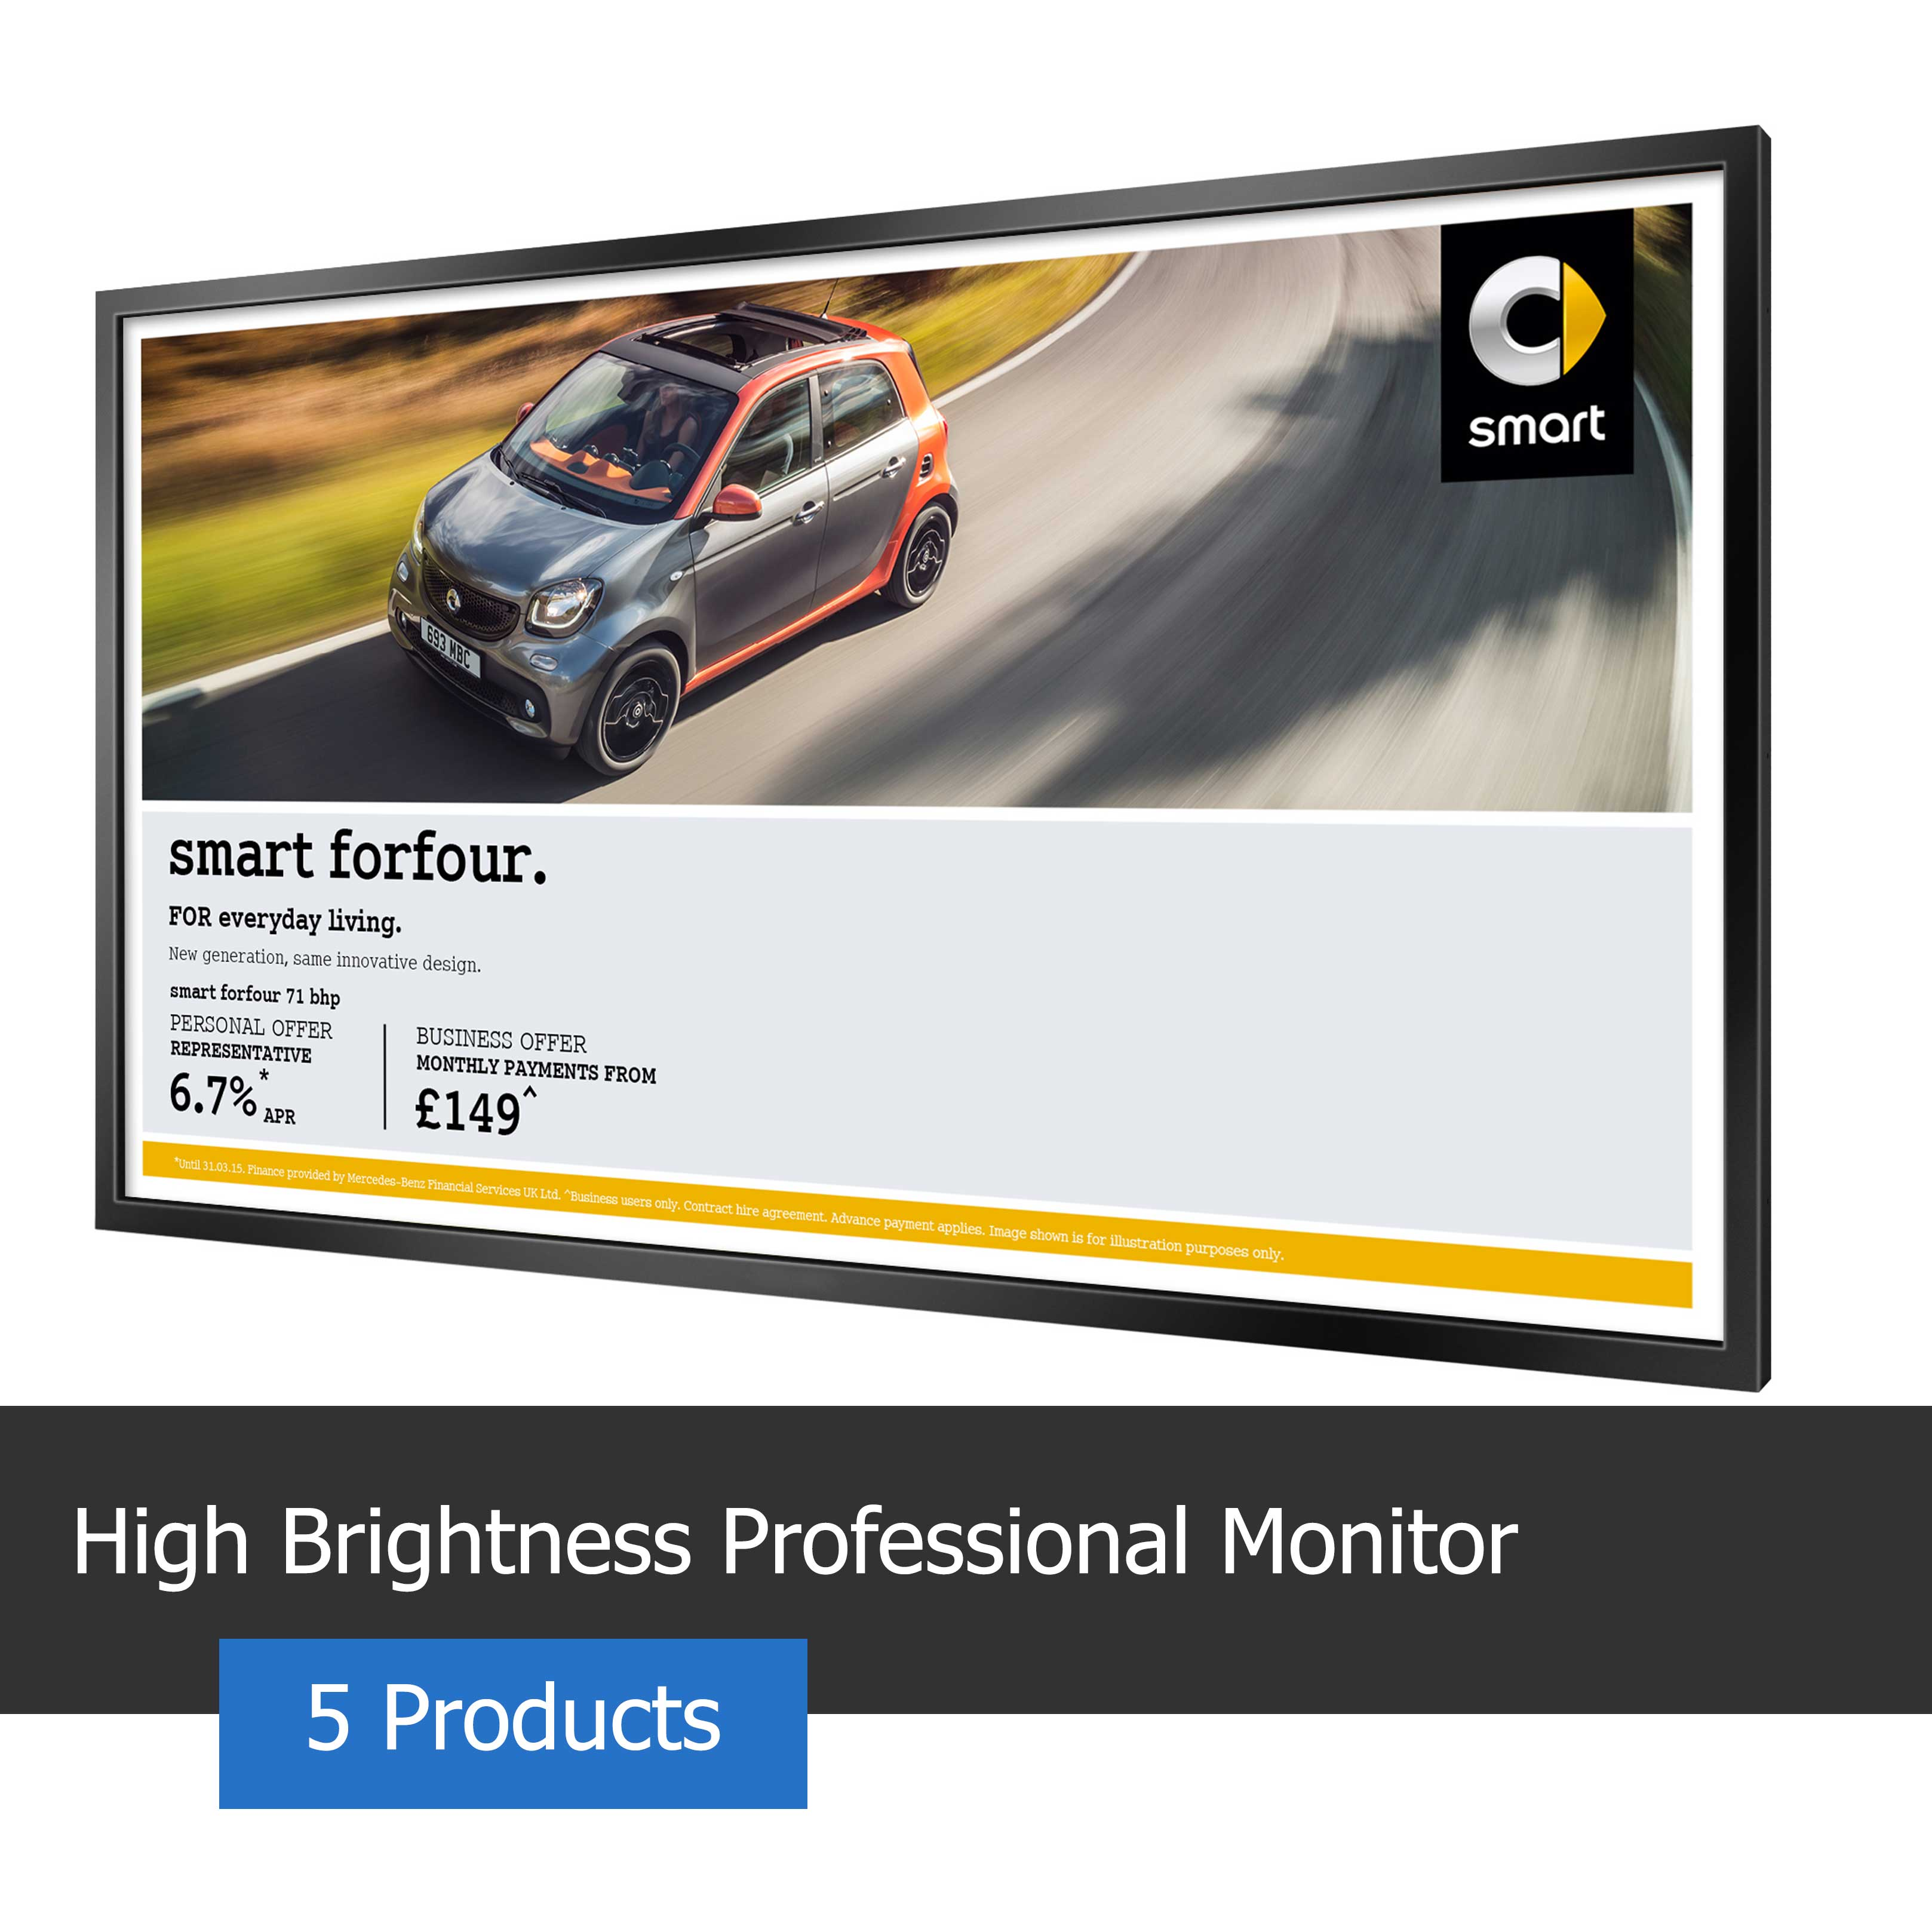 Image of a high brightness professional monitor